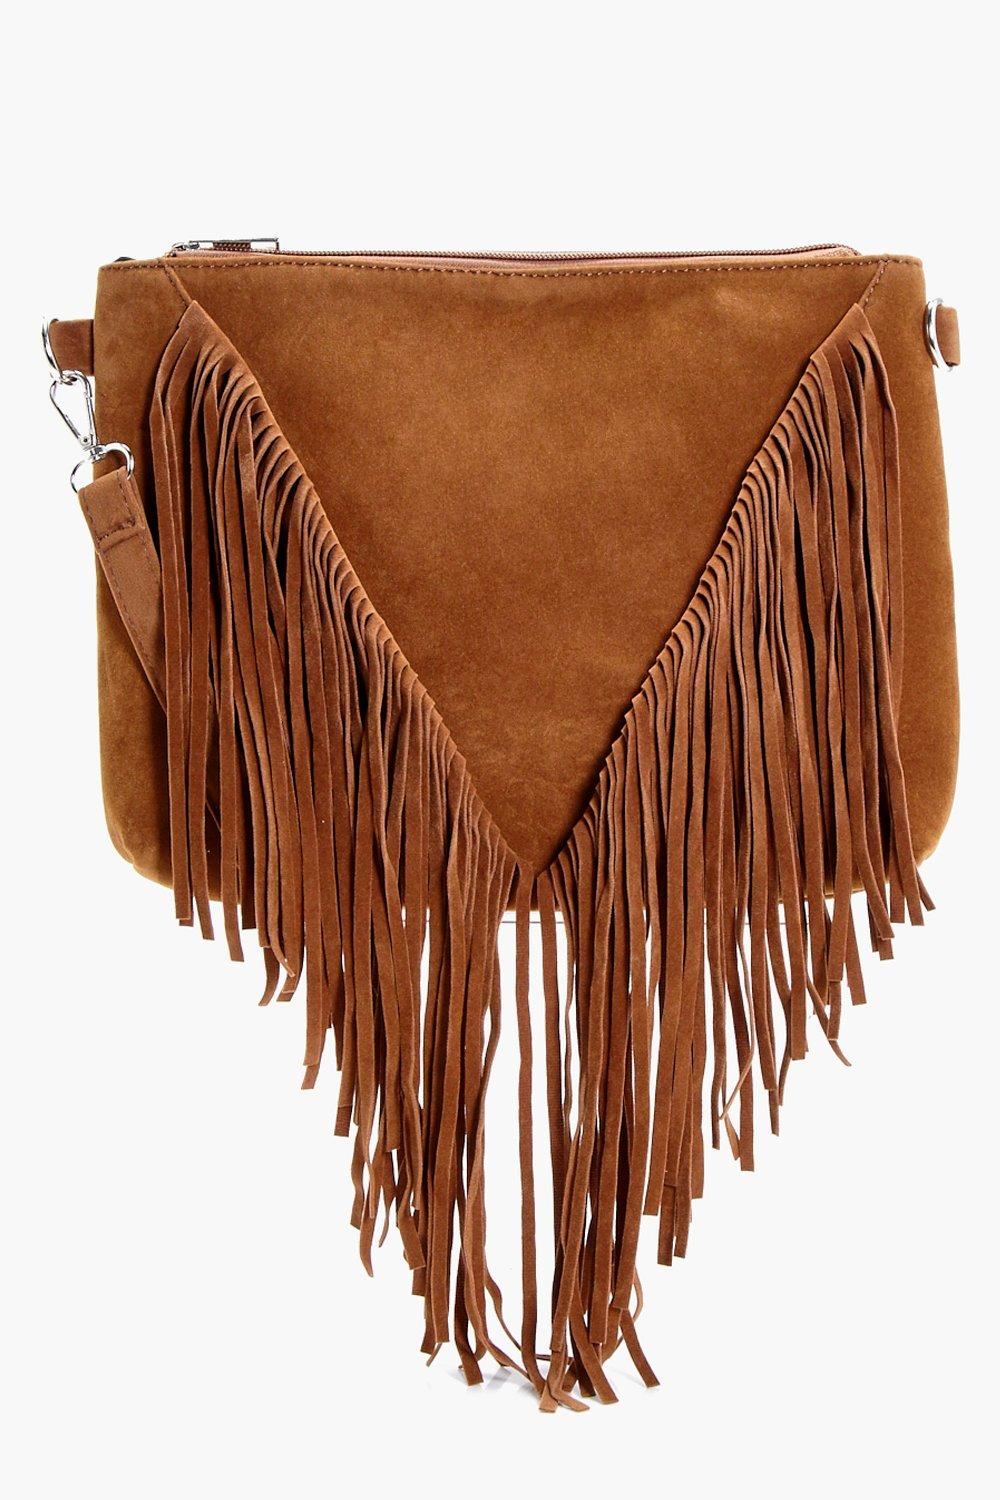 Suedette Fringed Cross Body - tan - Kelly Suedette